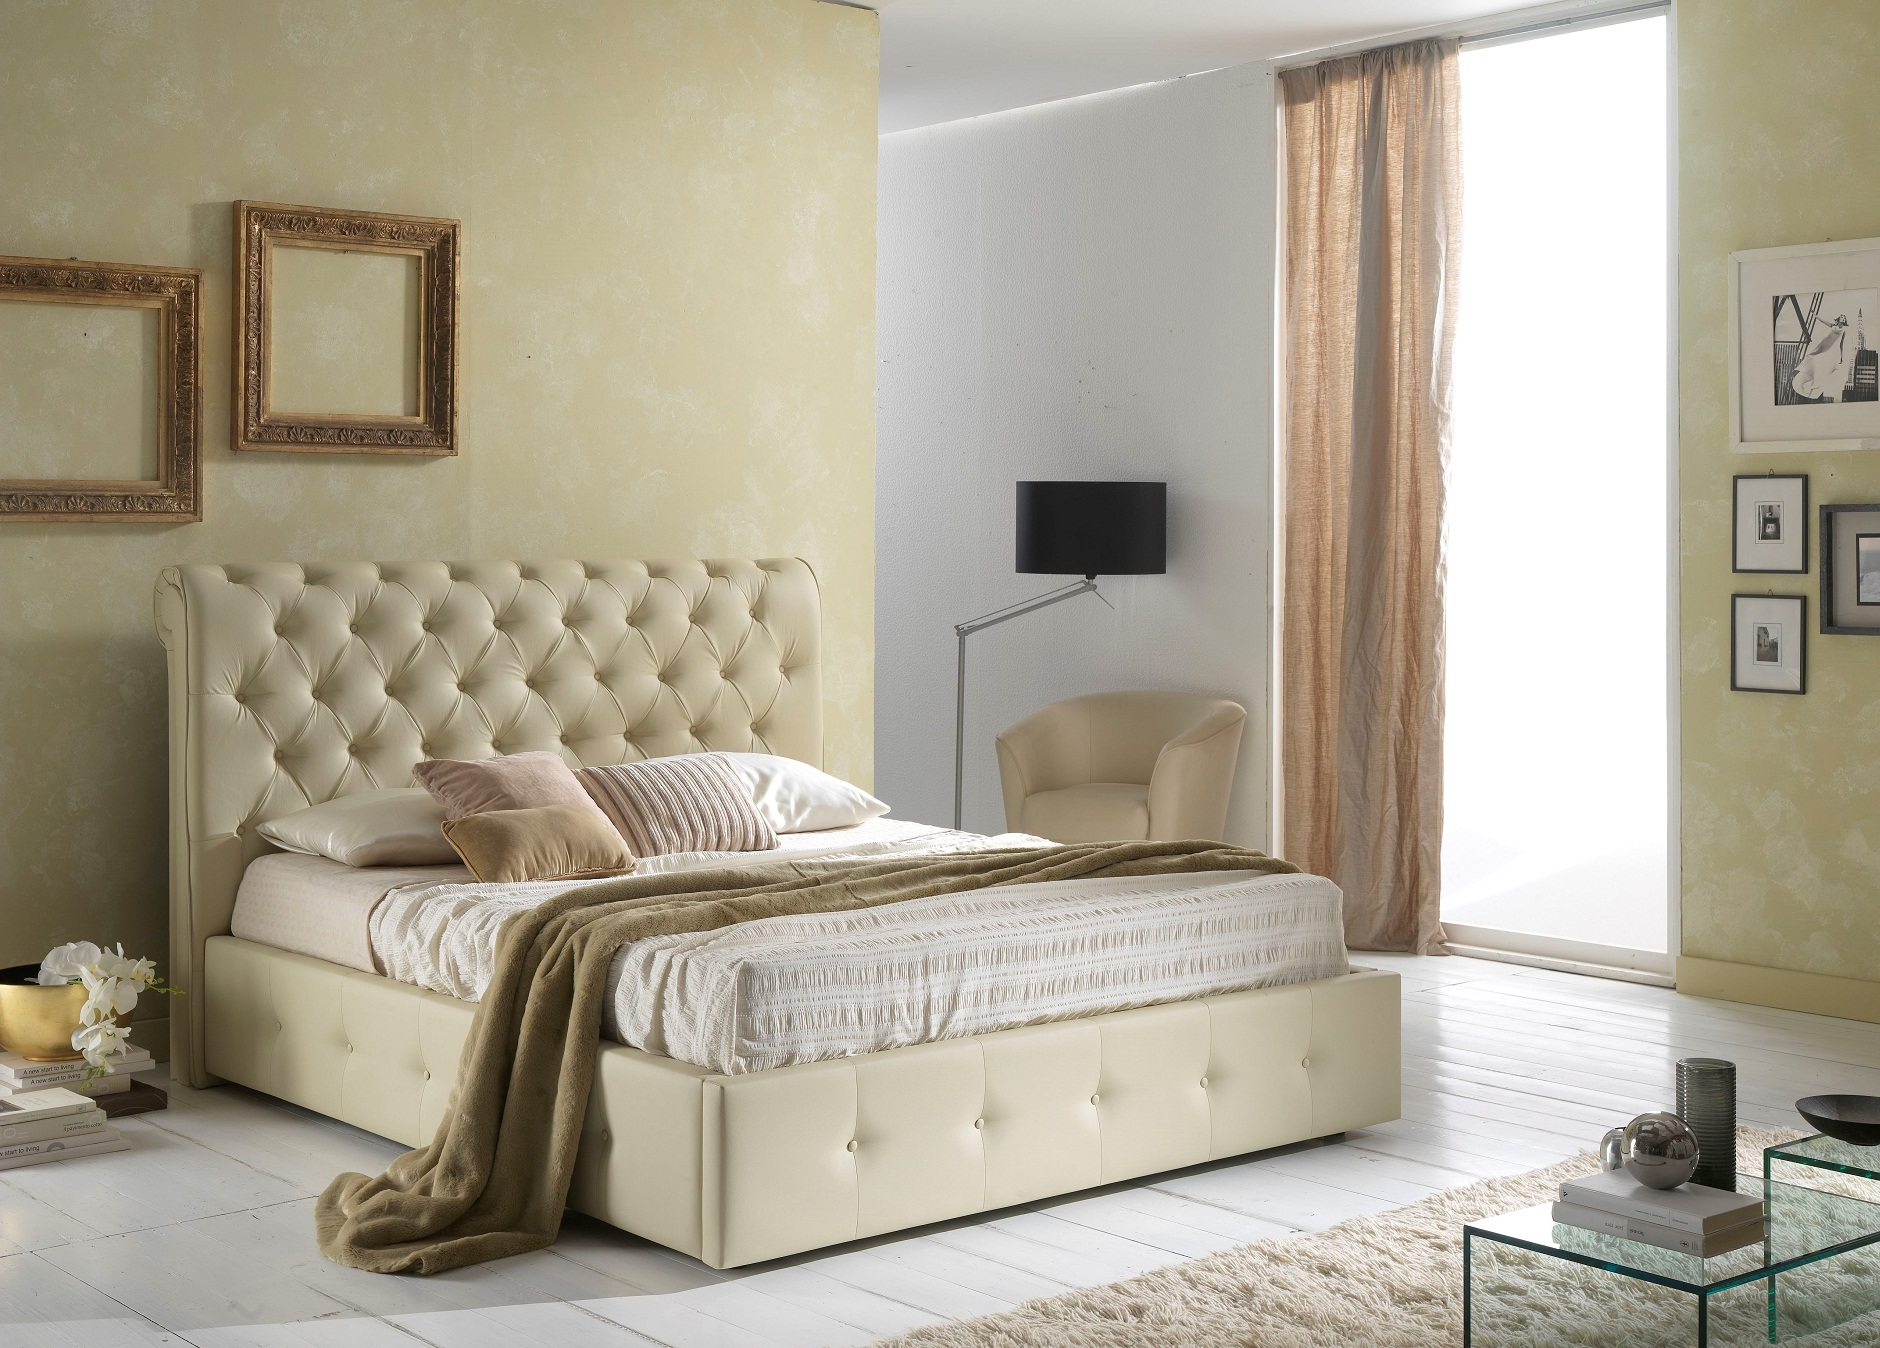 bett peninsula 160x200 cm mit stauraum polster beige creme pen 160 s. Black Bedroom Furniture Sets. Home Design Ideas